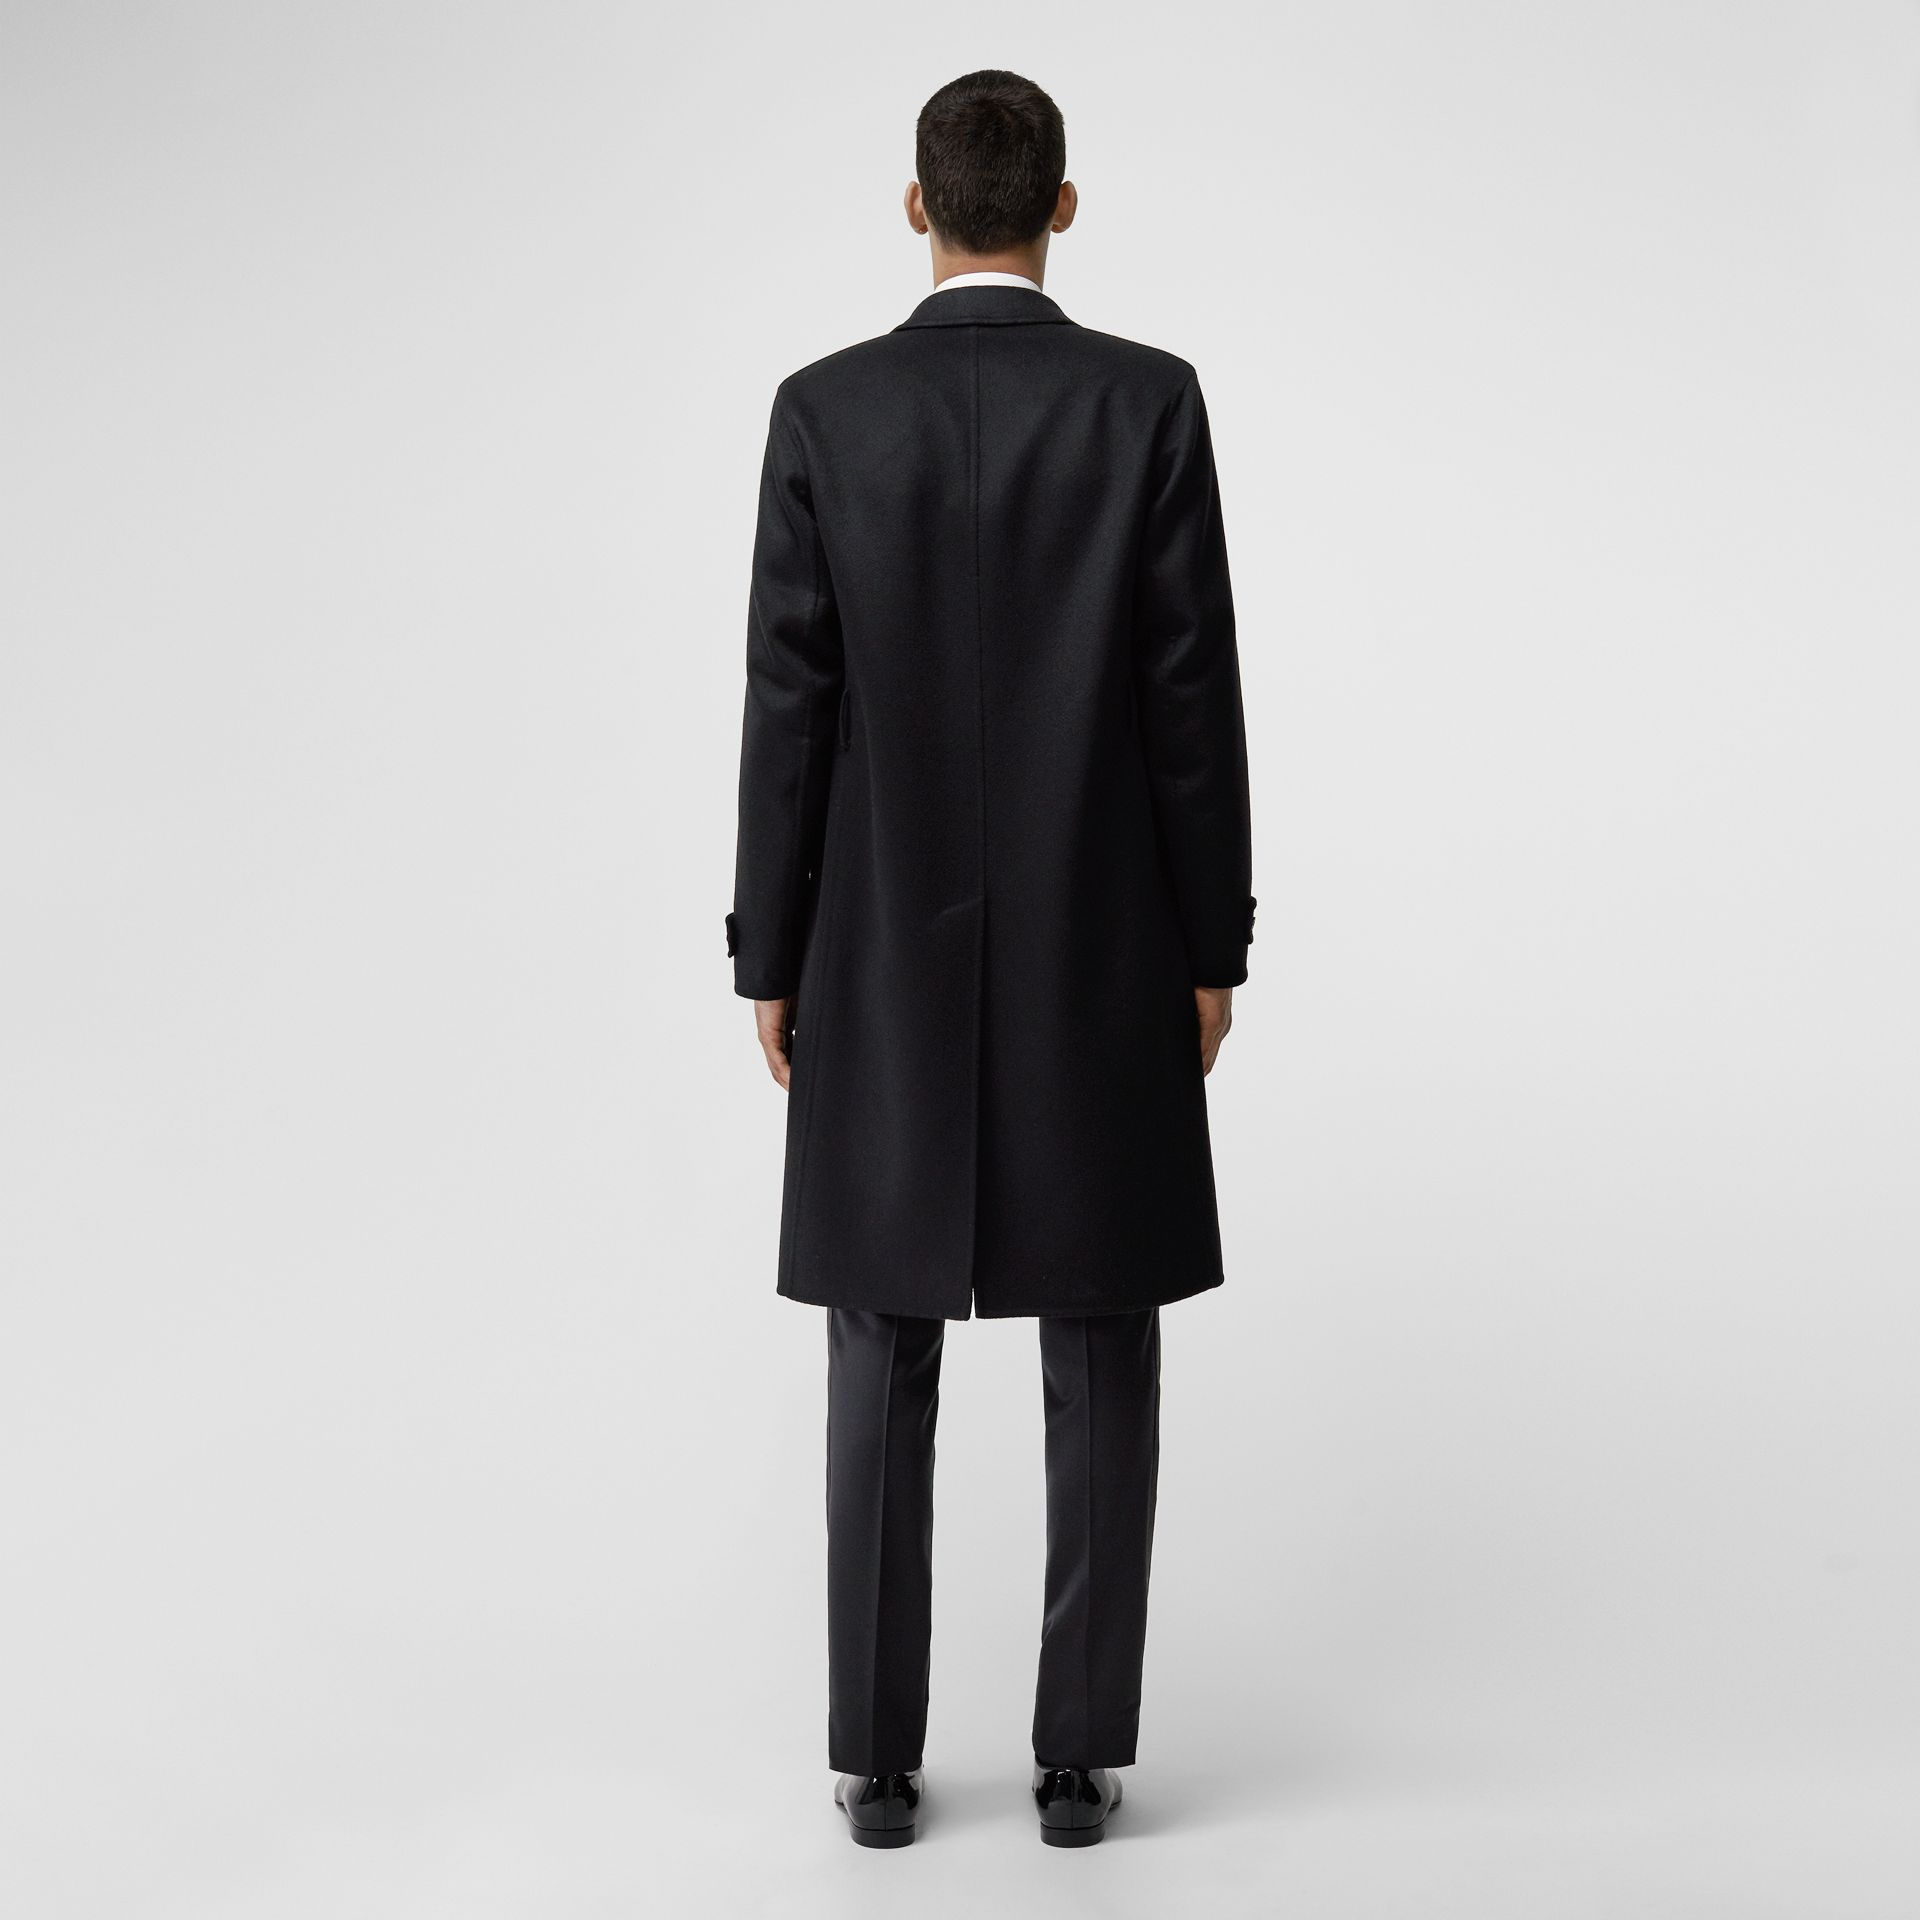 Cashmere Tailored Coat in Black - Men | Burberry - gallery image 2